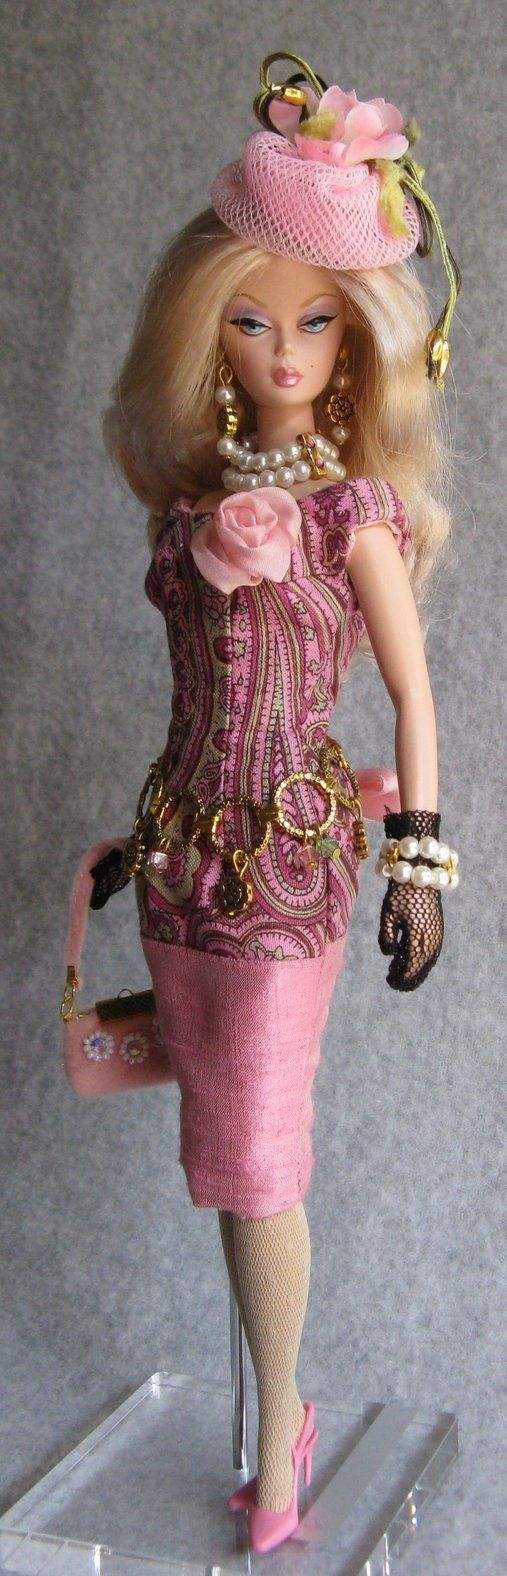 Pink handmade doll dress for silkstone BArbie by Twinkling-Stardust on…: